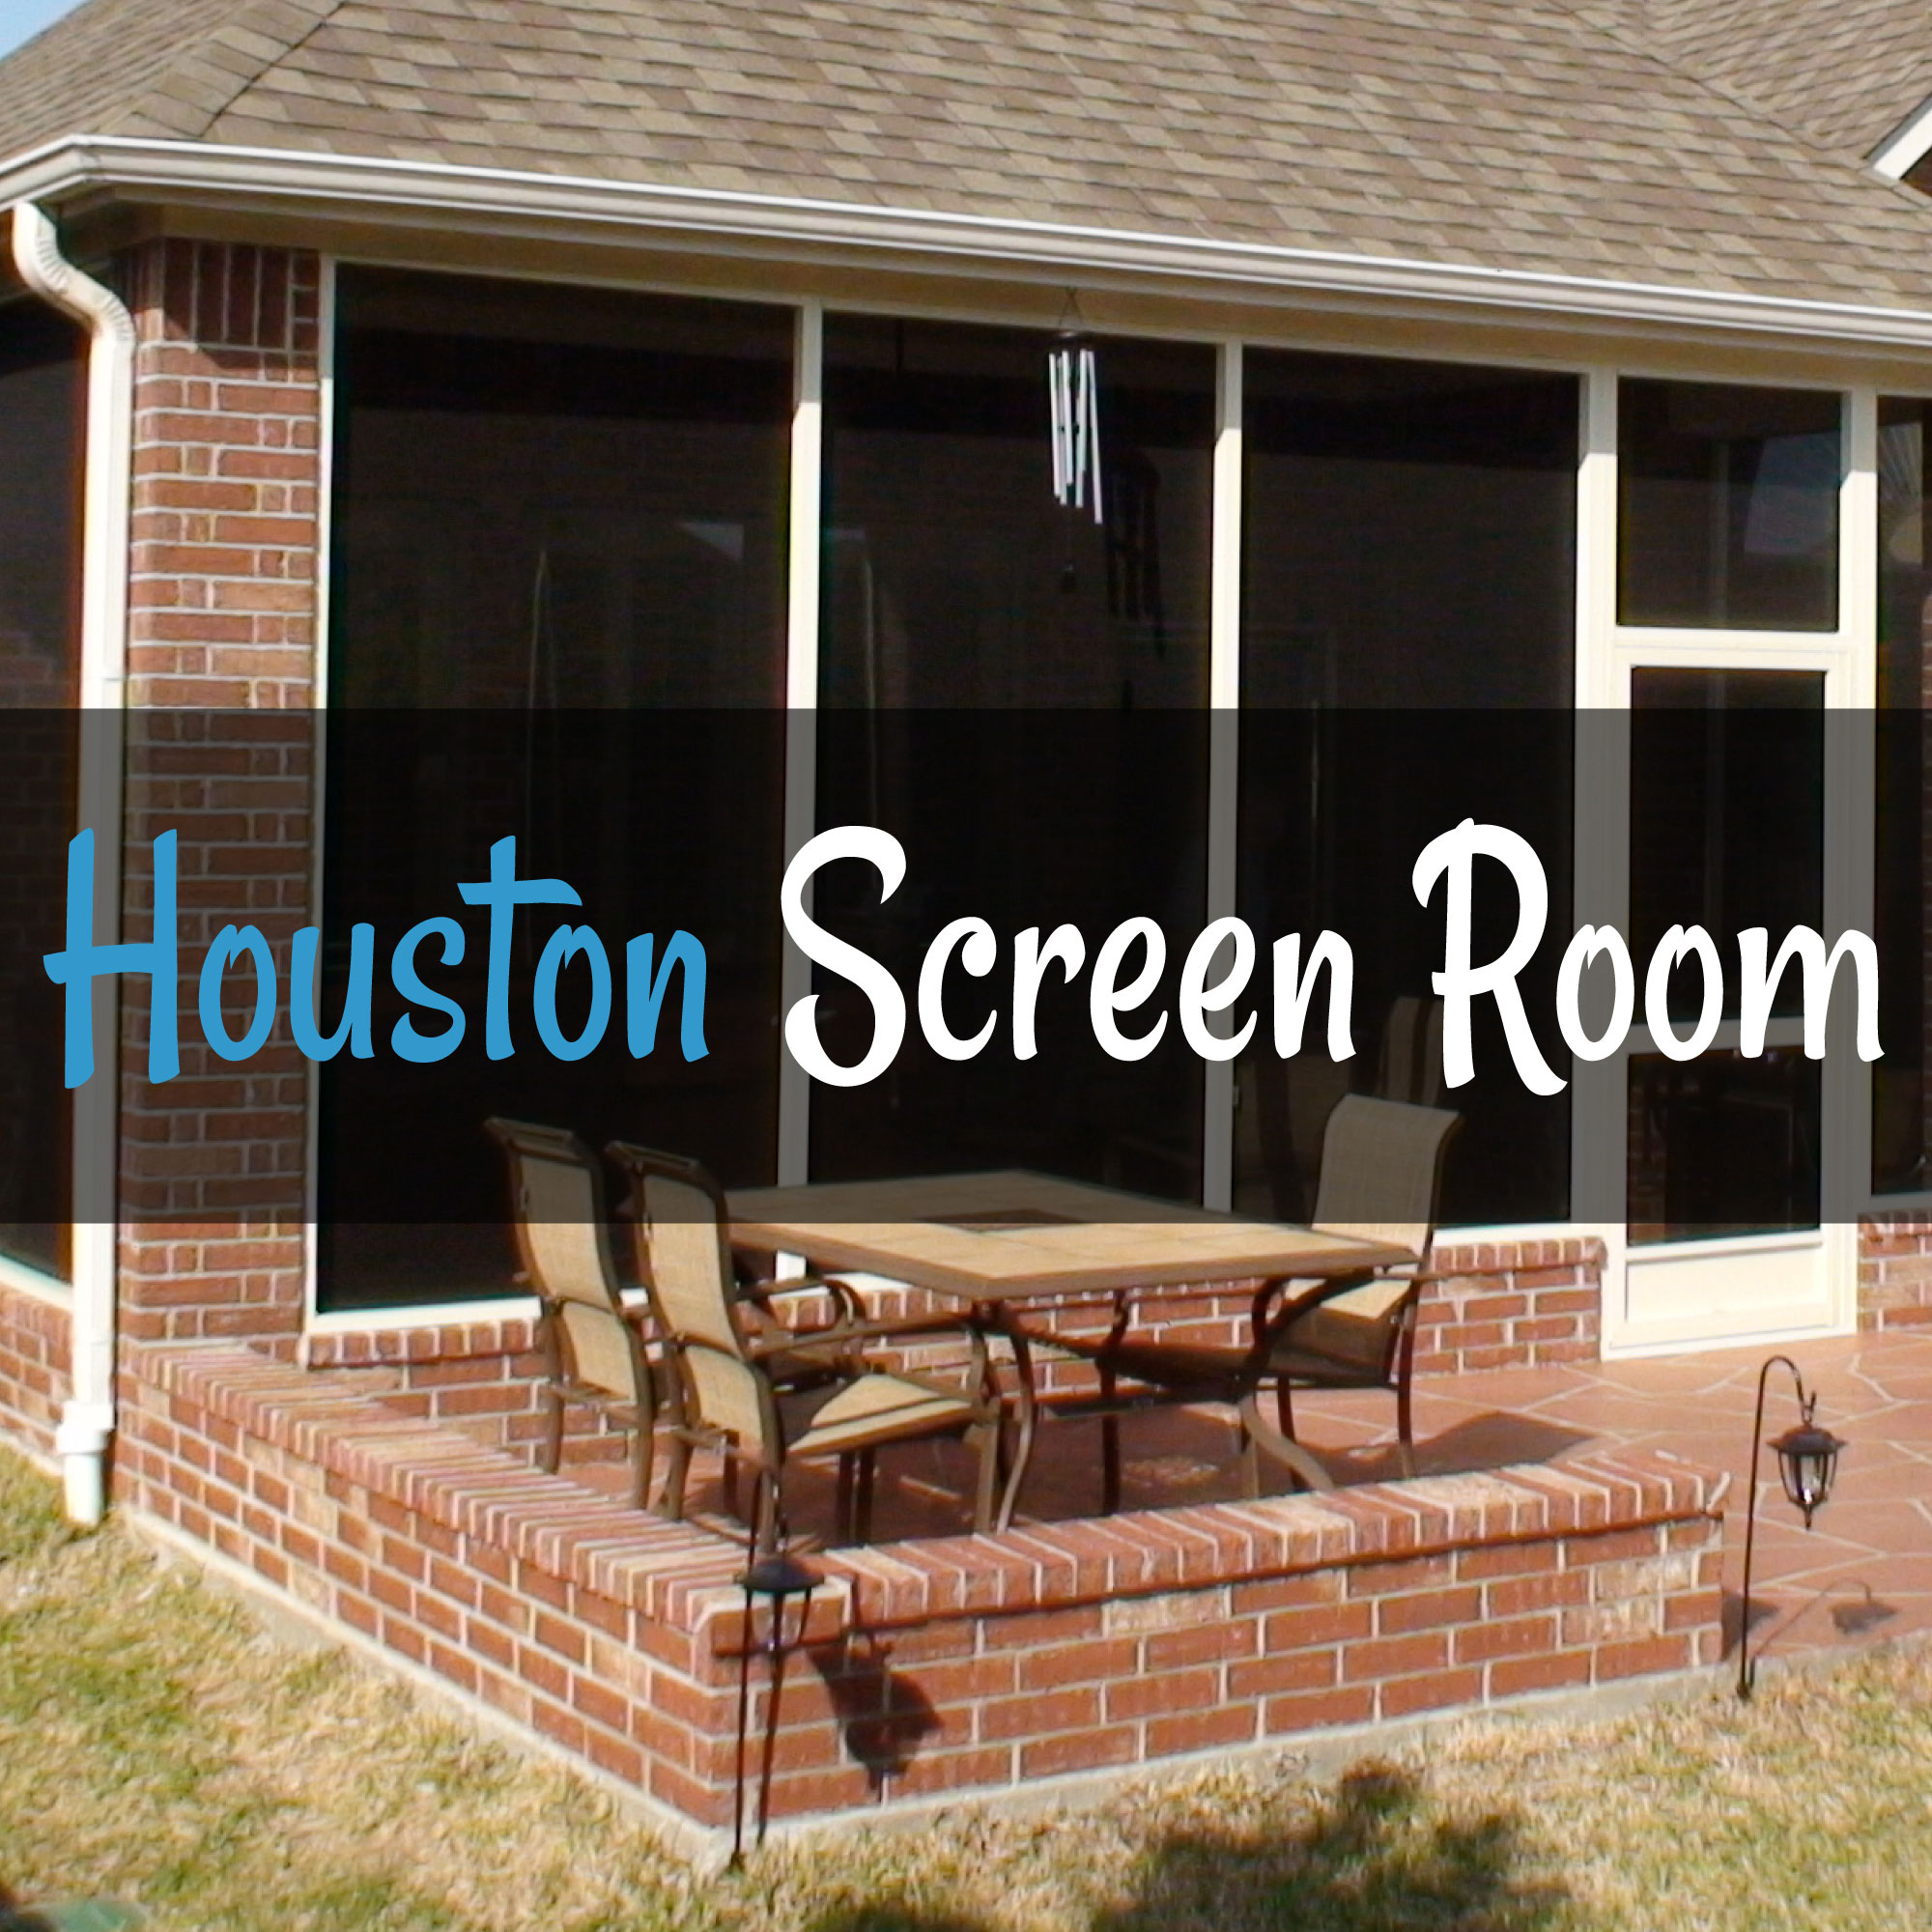 Houston-Screen-Room-FB-Profile.jpg